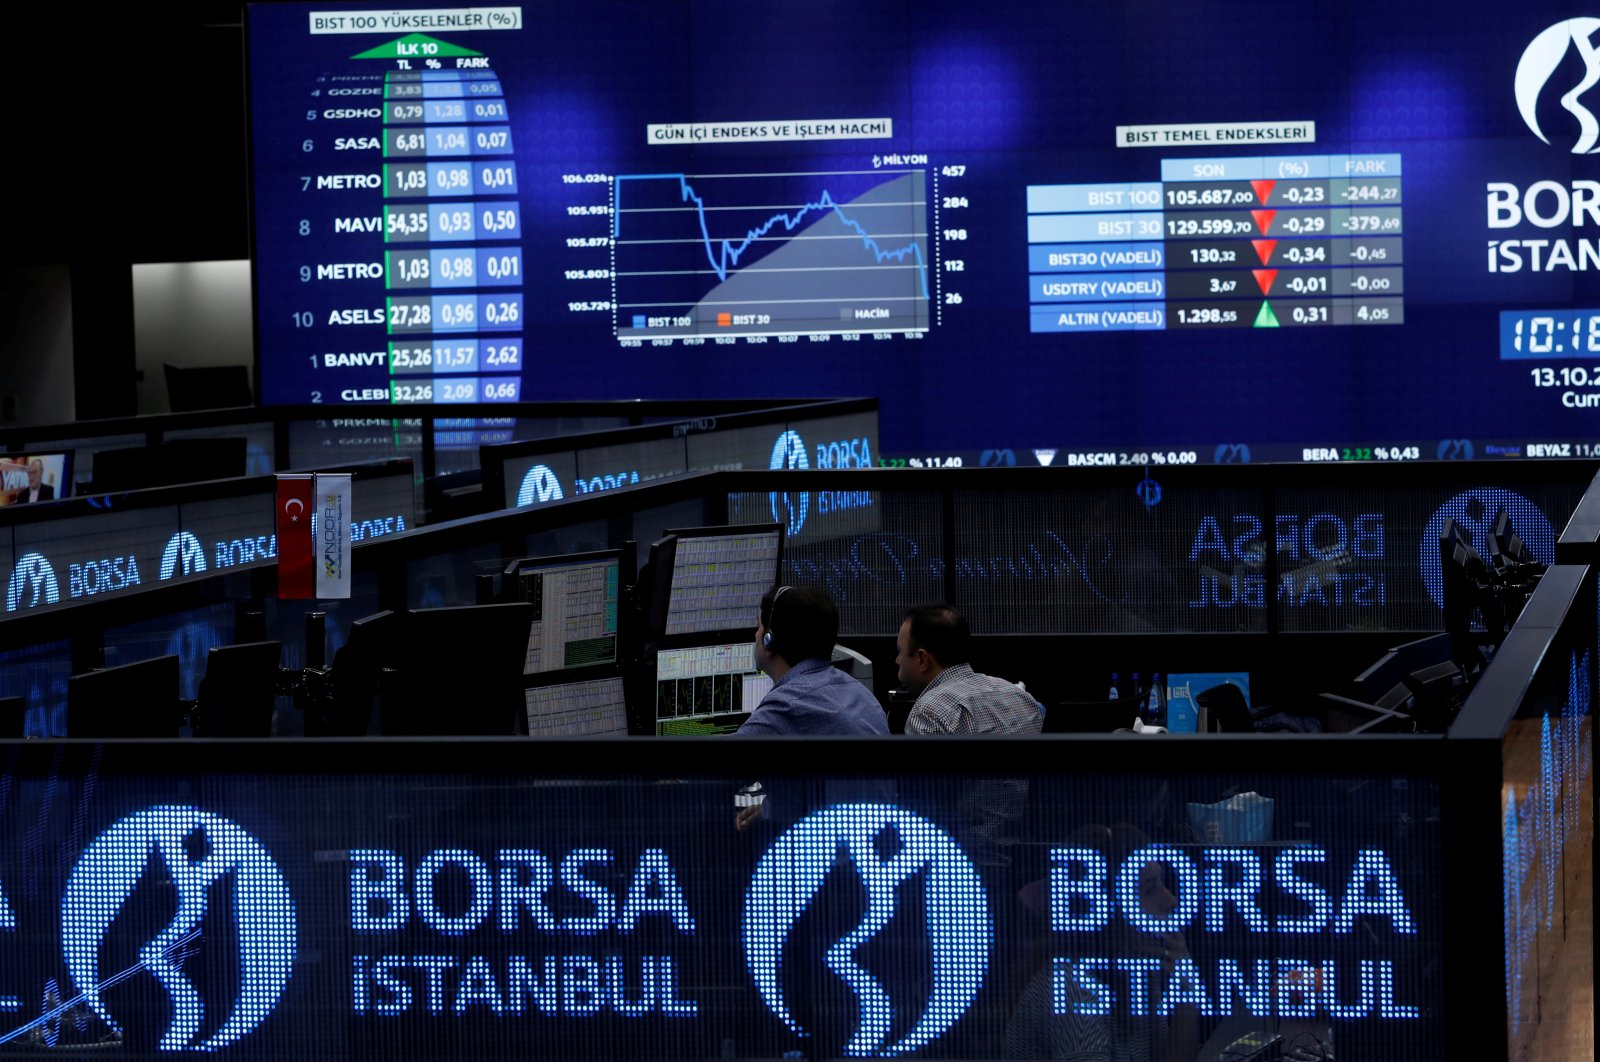 Traders work at their desks on the floor of the Borsa Istanbul in Istanbul, Turkey, Oct. 13, 2017. (Reuters Photo)